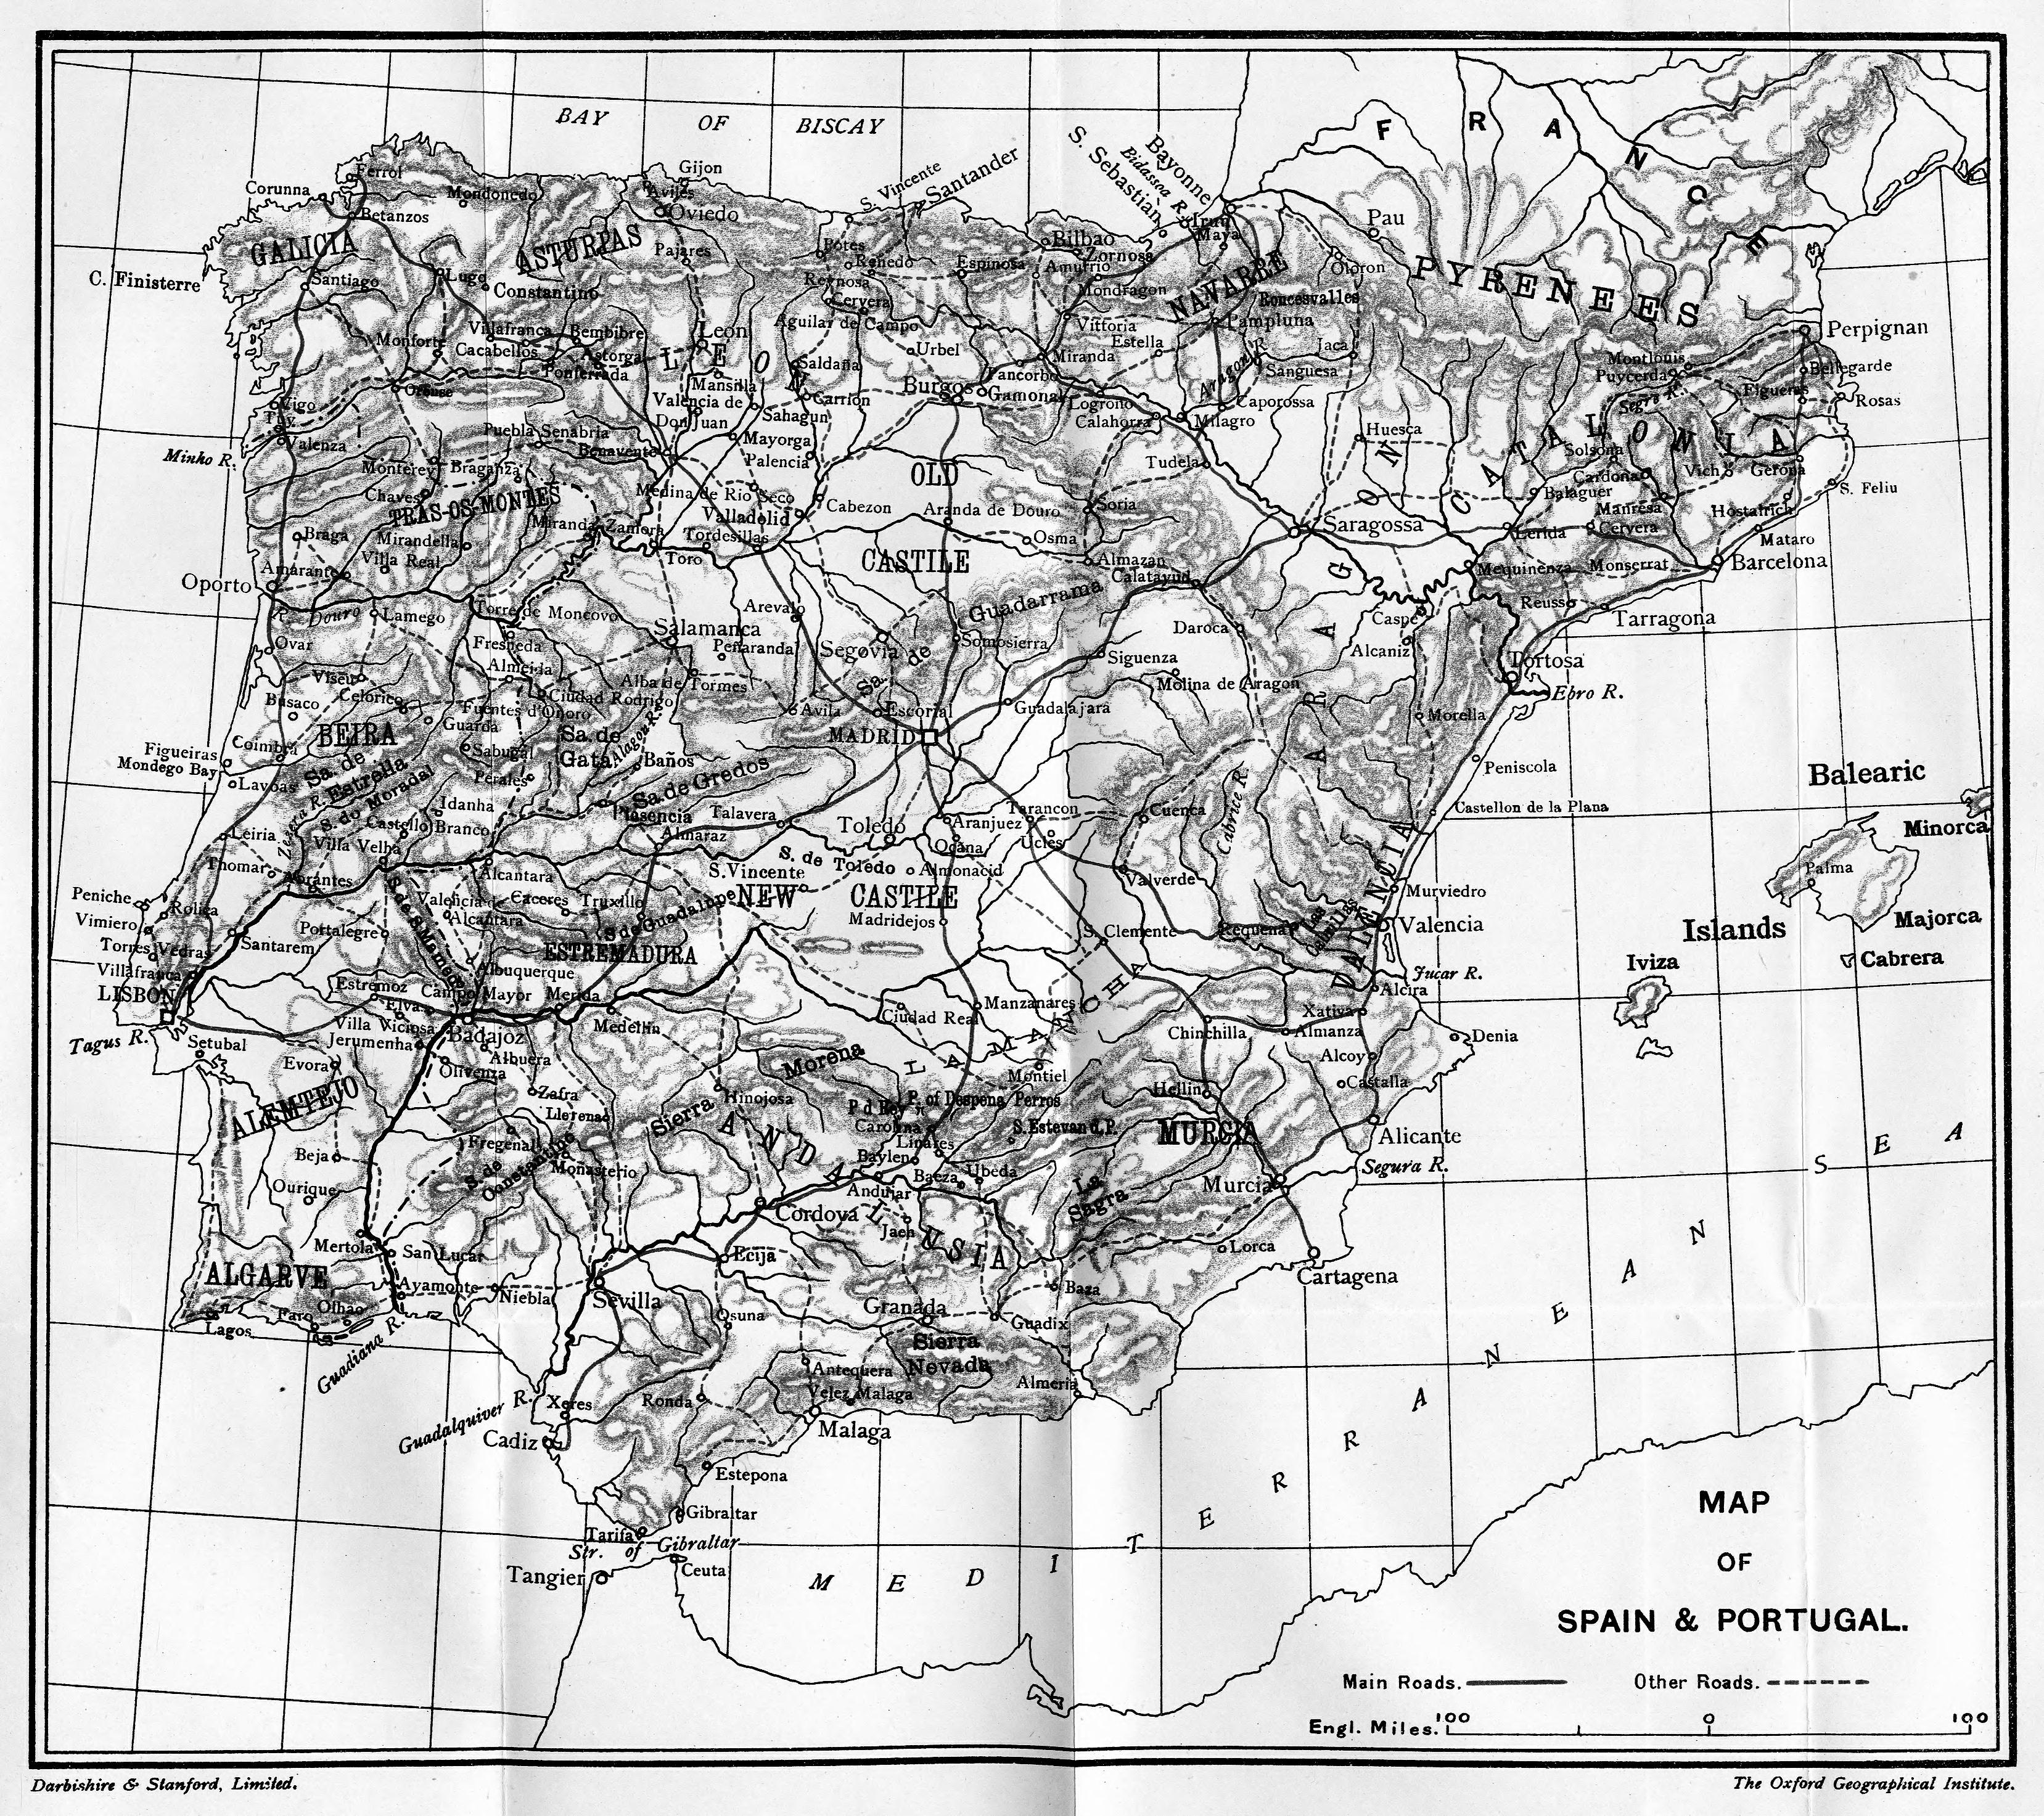 FileMap of Spain  Portugaljpg  Wikimedia Commons